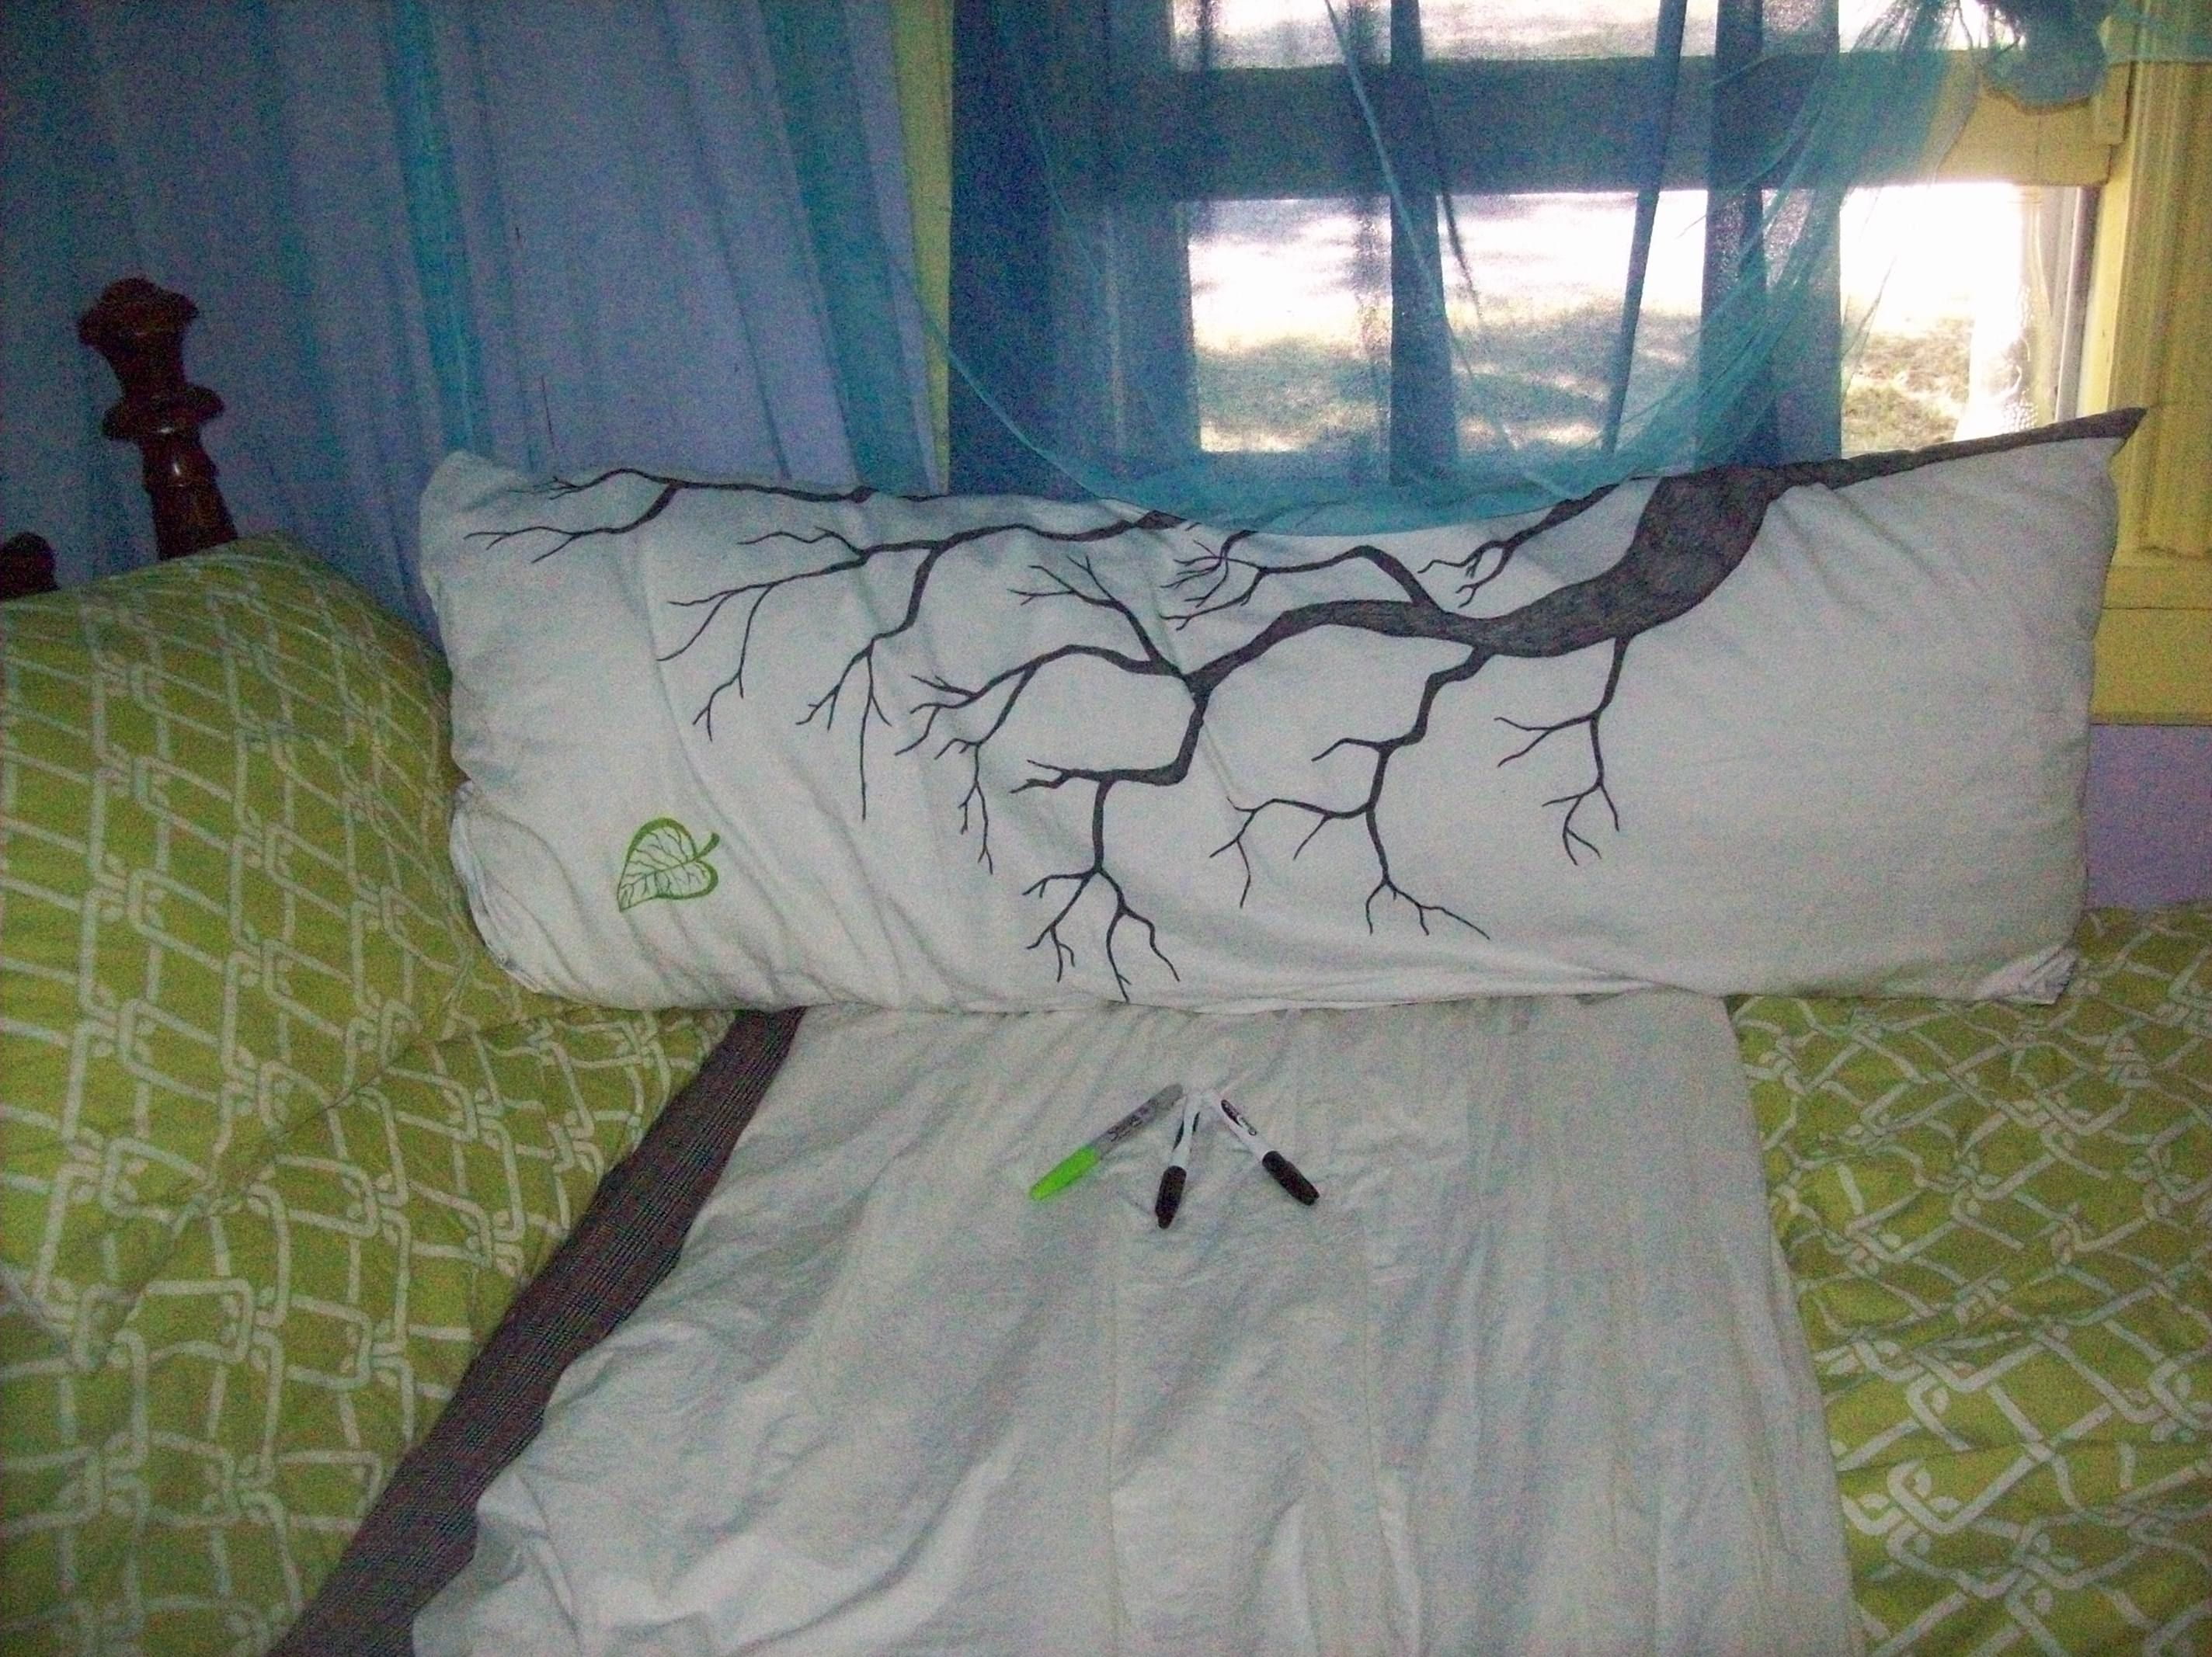 DIY body pillow cover Plain white cover decorated with Sharpie s